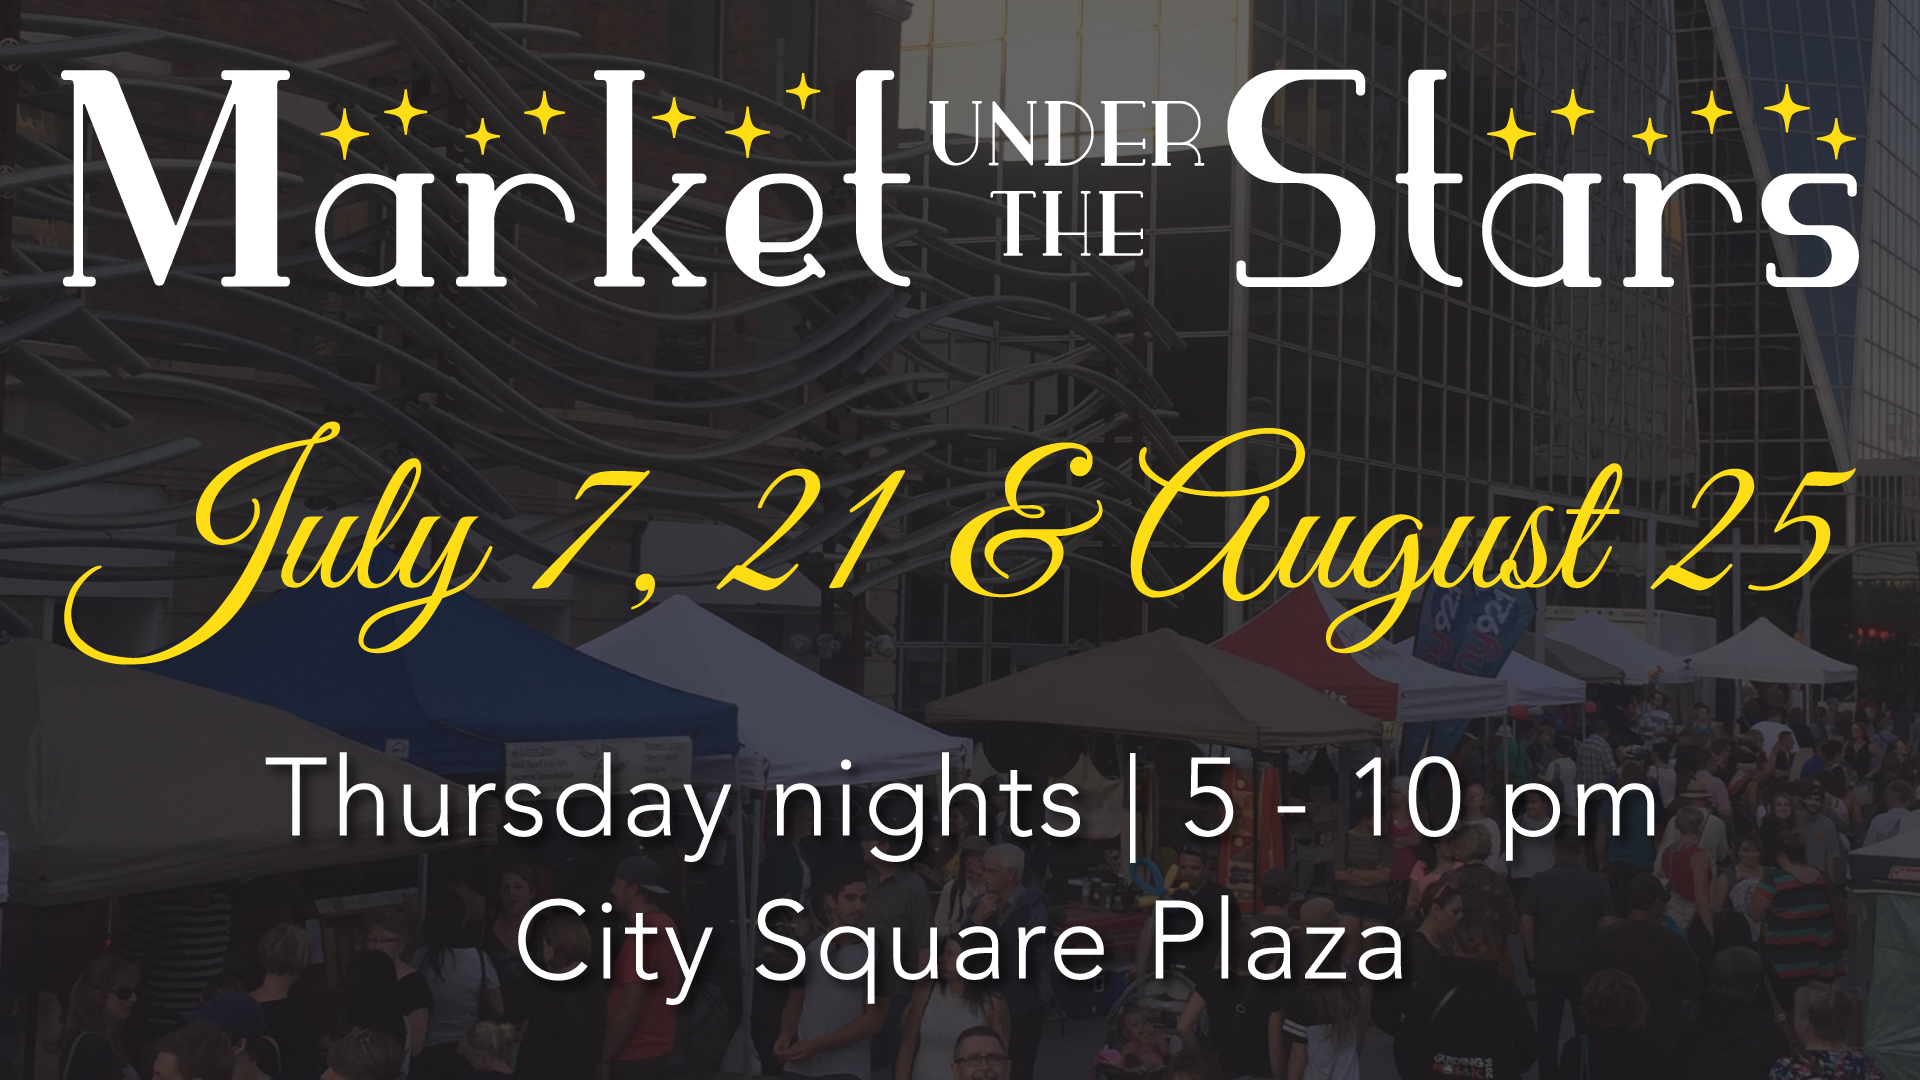 August 10 Map & Market T-Shirts! - Image 1